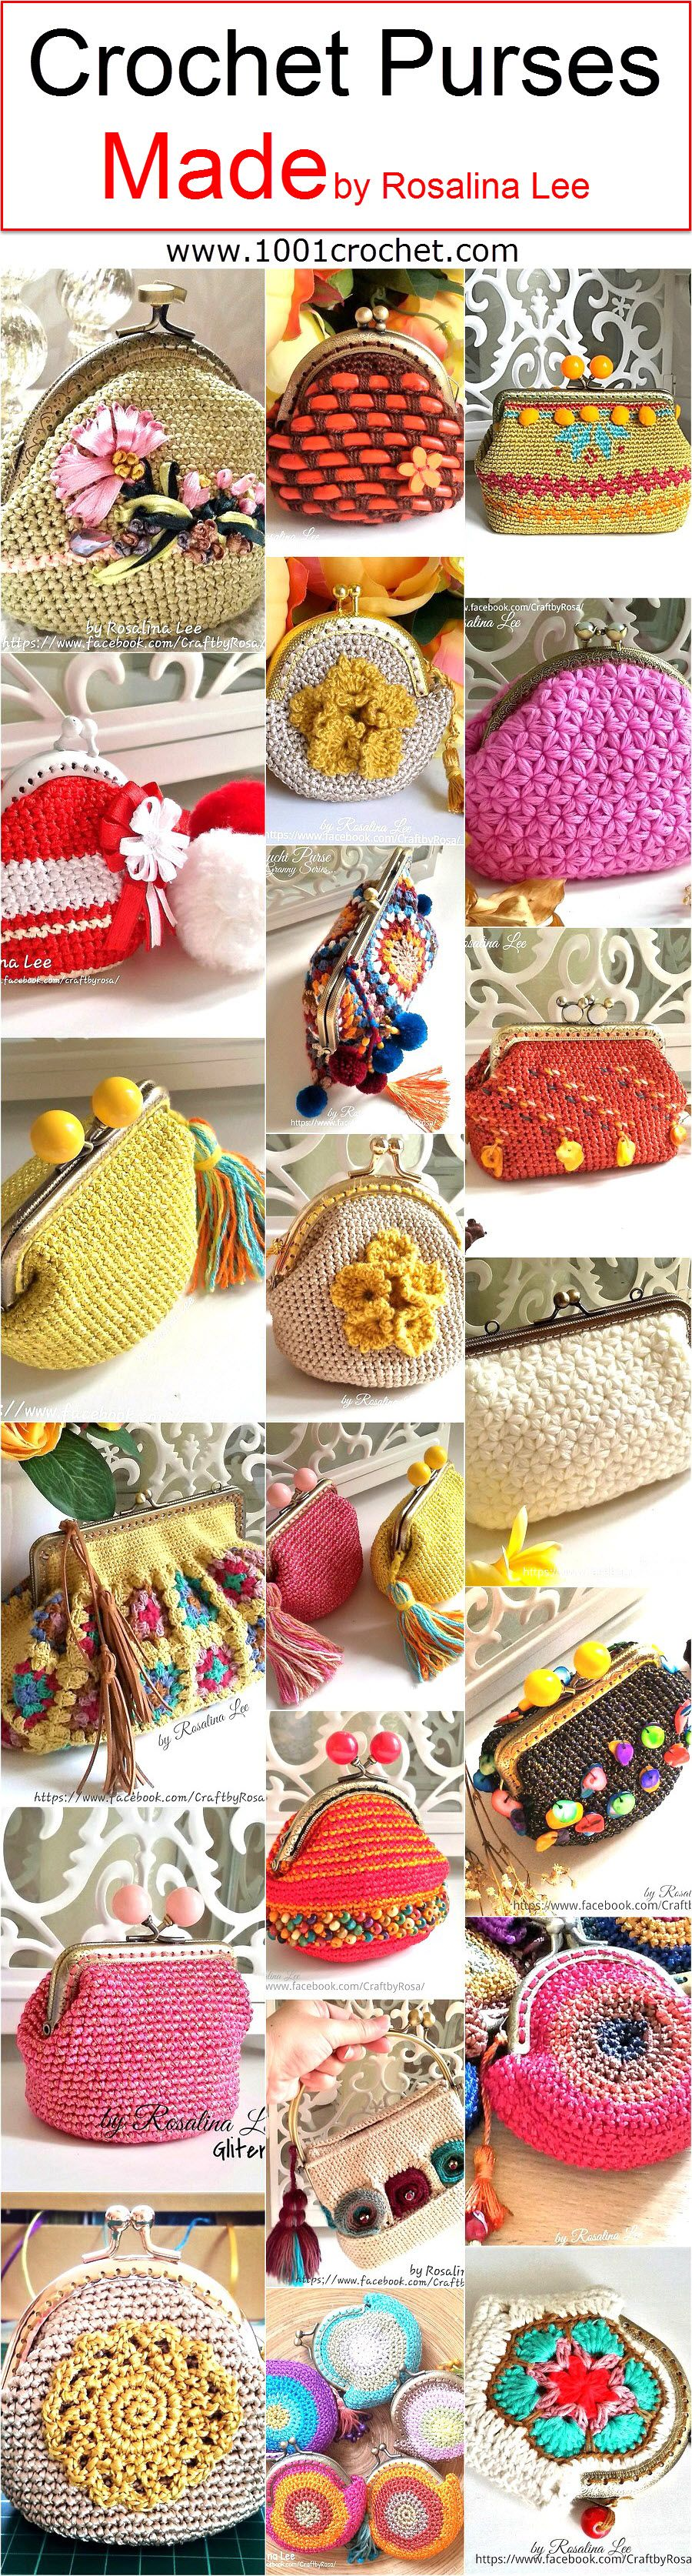 Crochet Purses Made by Rosalina Lee | gehäkelte Geldbörsen ...